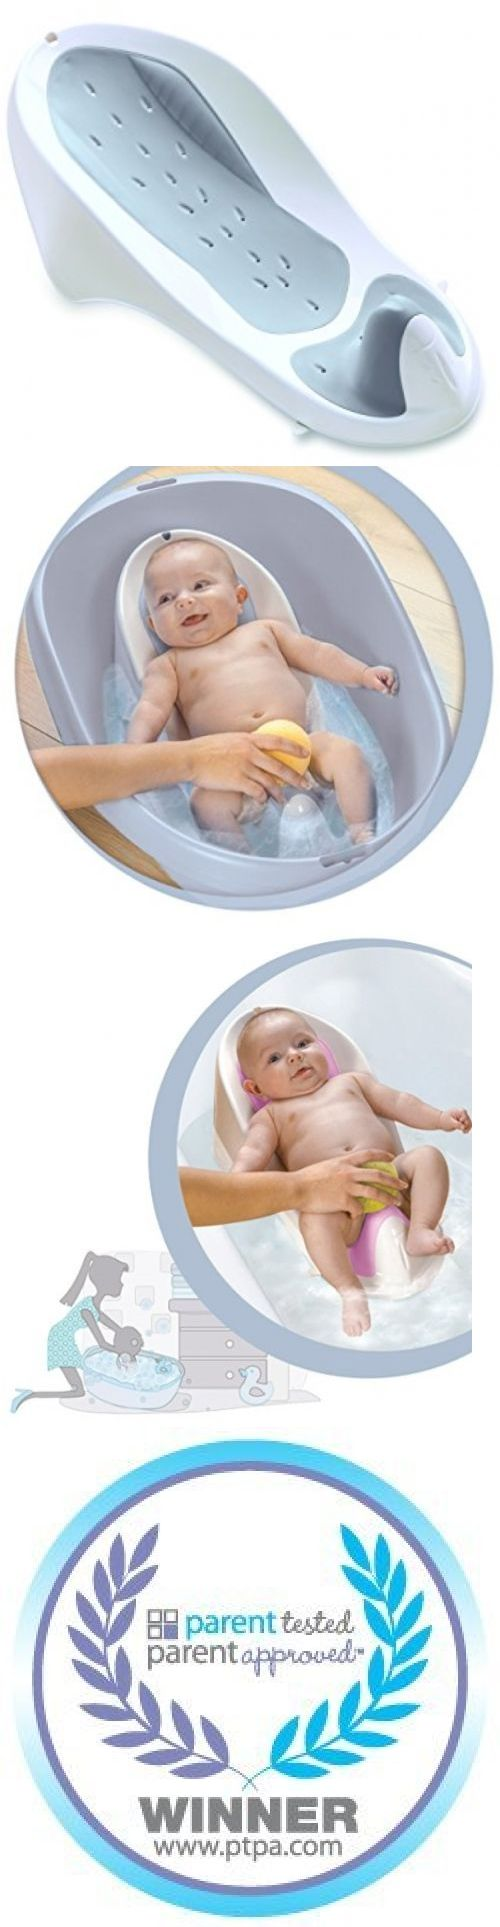 Bath Tub Seats and Rings 162024: Bath Support Tub Baby Toy Toddler Bathtub Child Seat Kids Shower Infant Boy Girl -> BUY IT NOW ONLY: $52.25 on eBay!